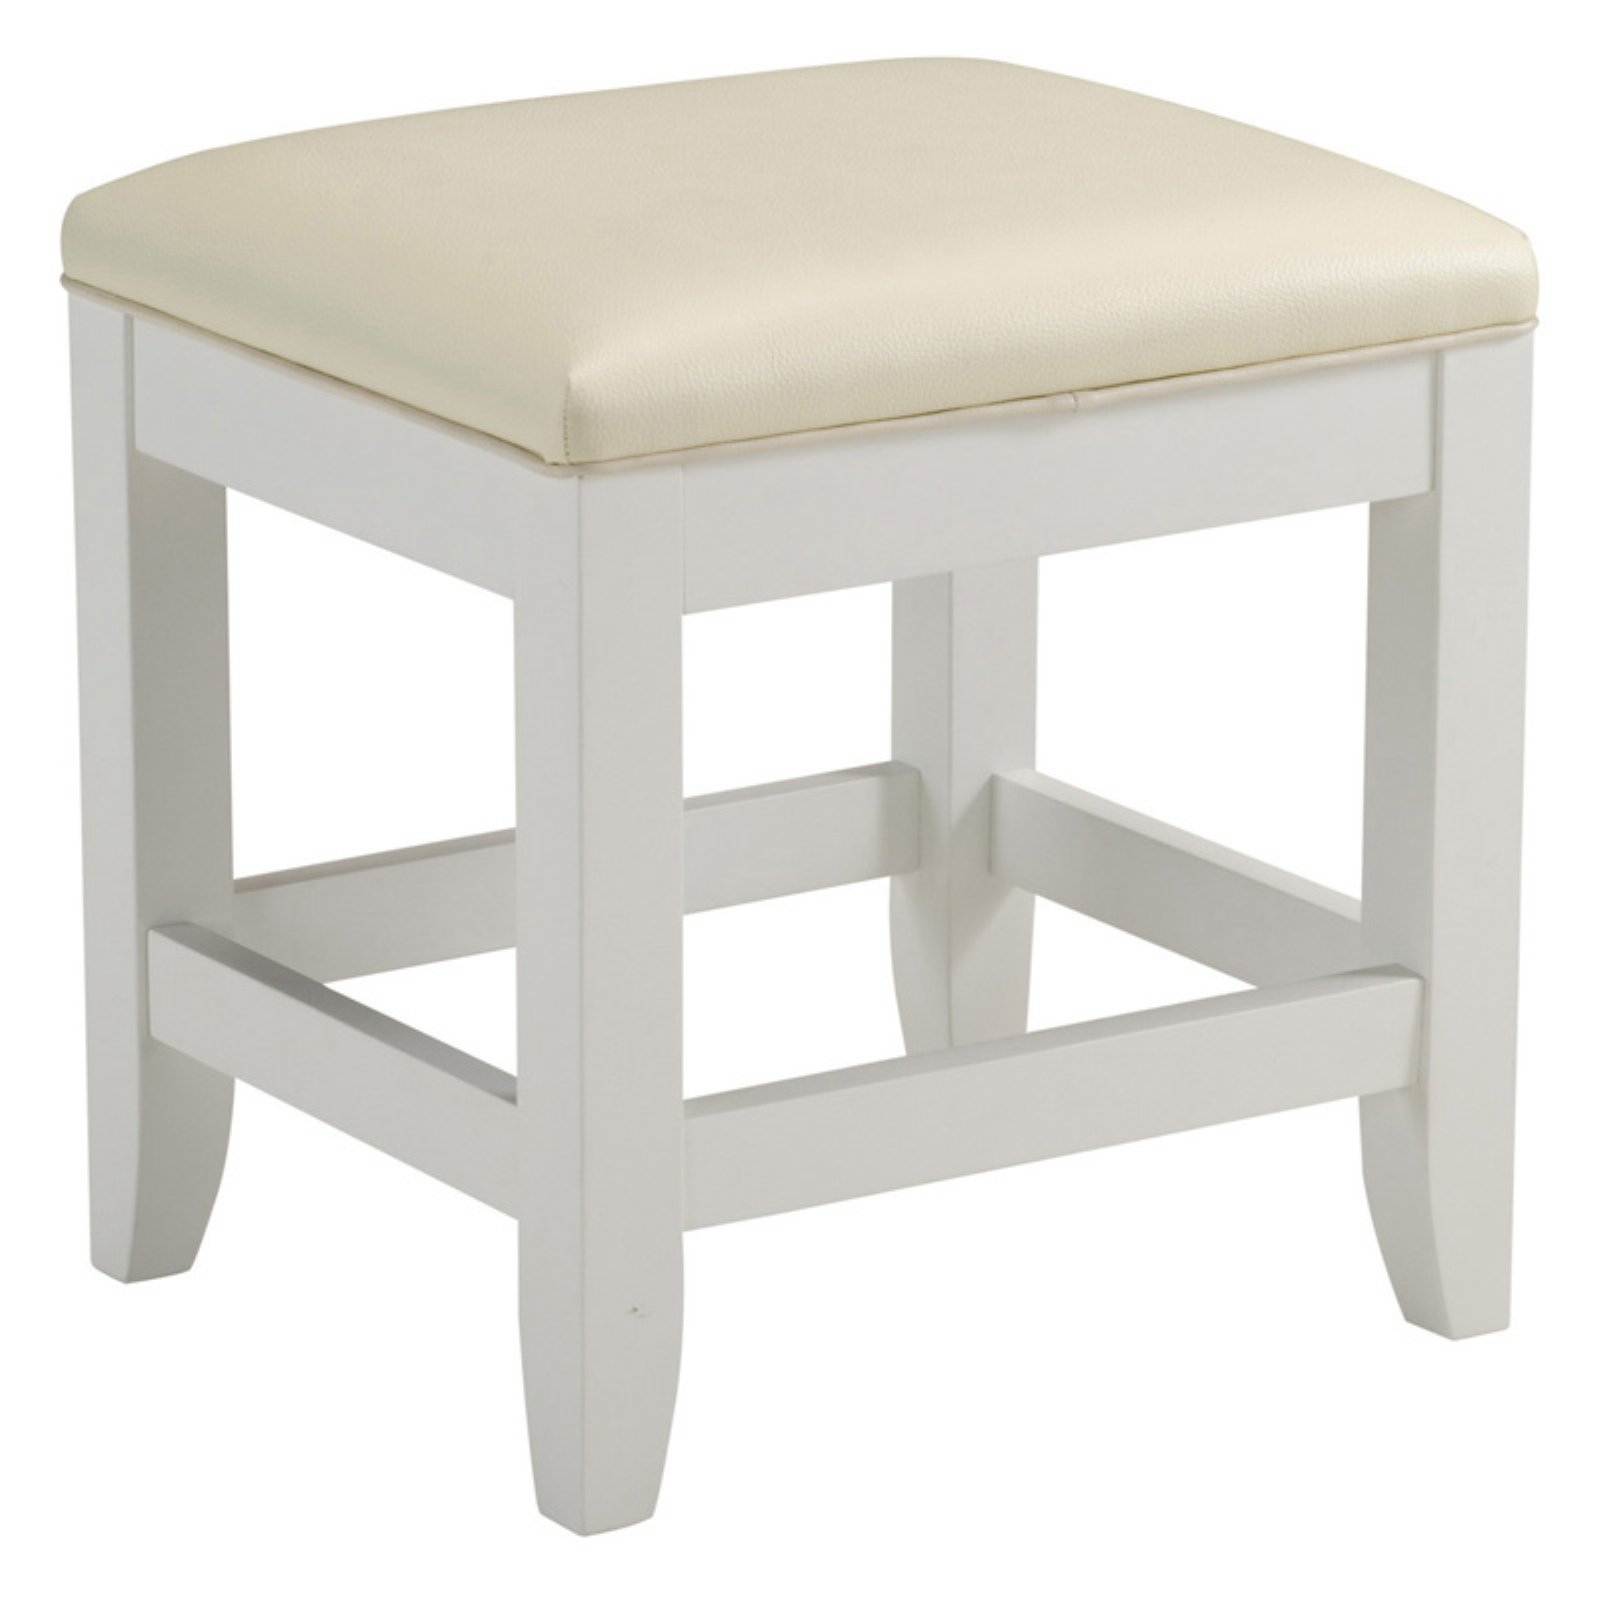 Home Styles Naples Vanity Bench, White by Generic